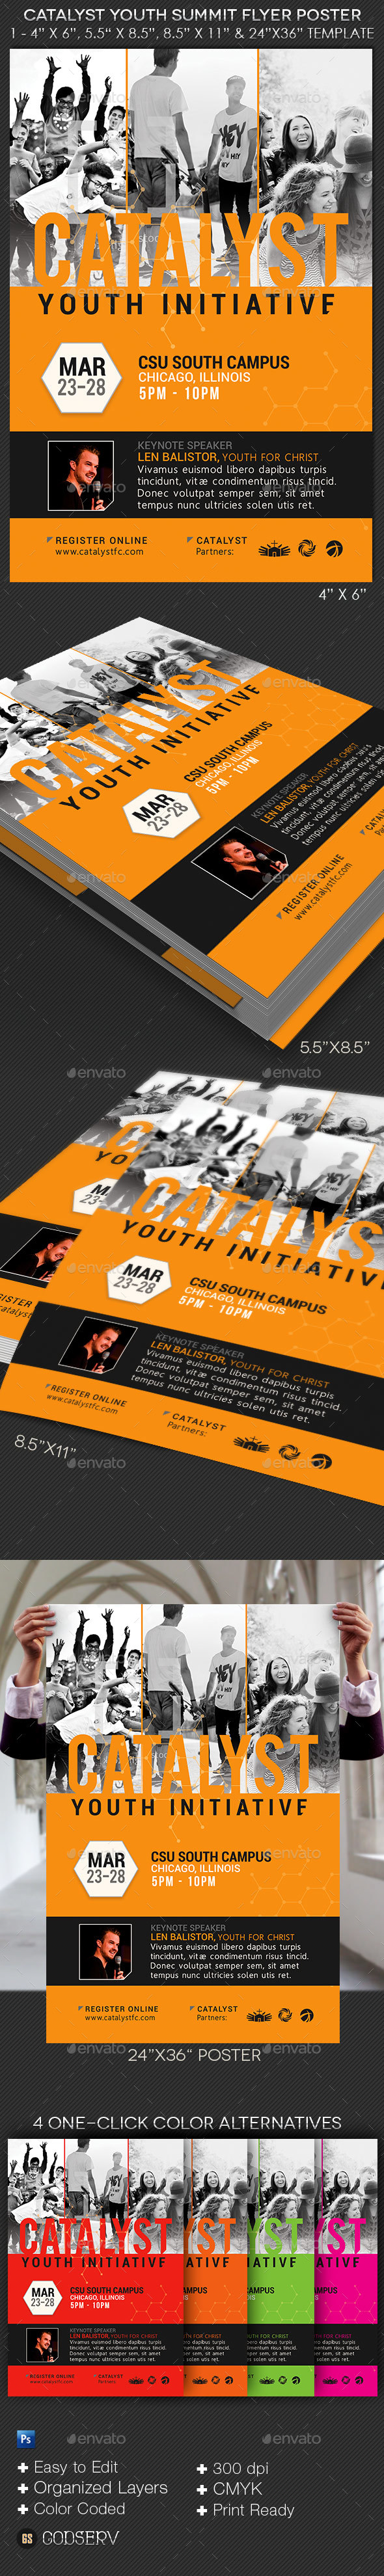 Catalyst Youth Summit Flyer Poster Template - Church Flyers